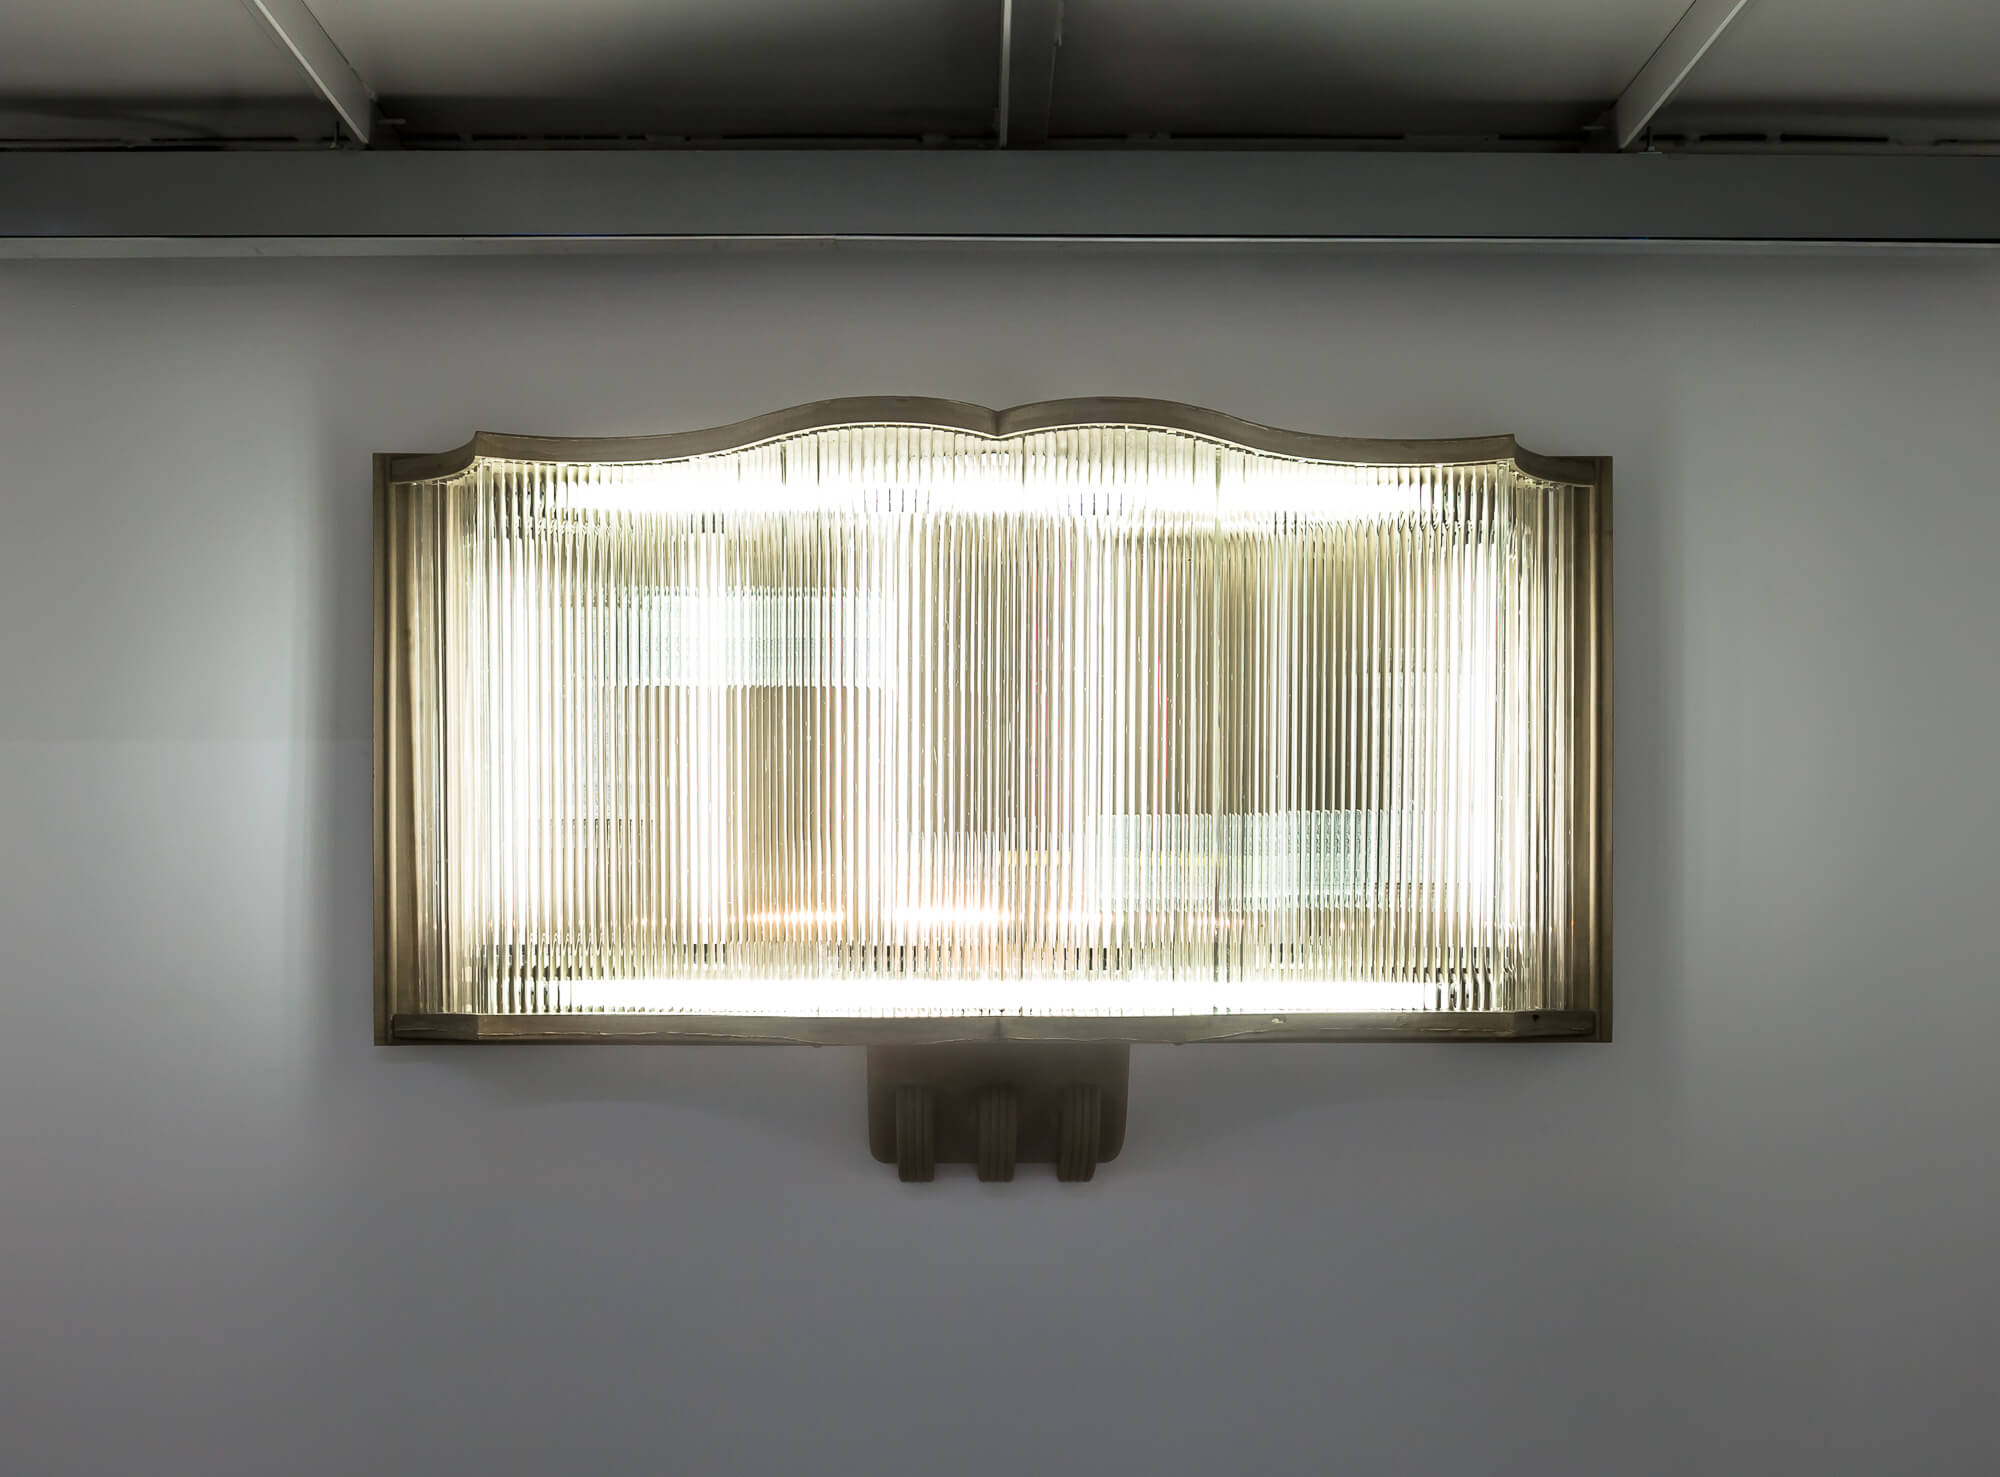 SI ONSITE Swiss Institute Sam Lewitt, Stranded Asset, 2018. Cast fuel ash, metal hardware, clear Murano glass rods, electrical hardware, fluorescent bulbs. Courtesy of the artist and Miguel Abreu Gallery, New York.